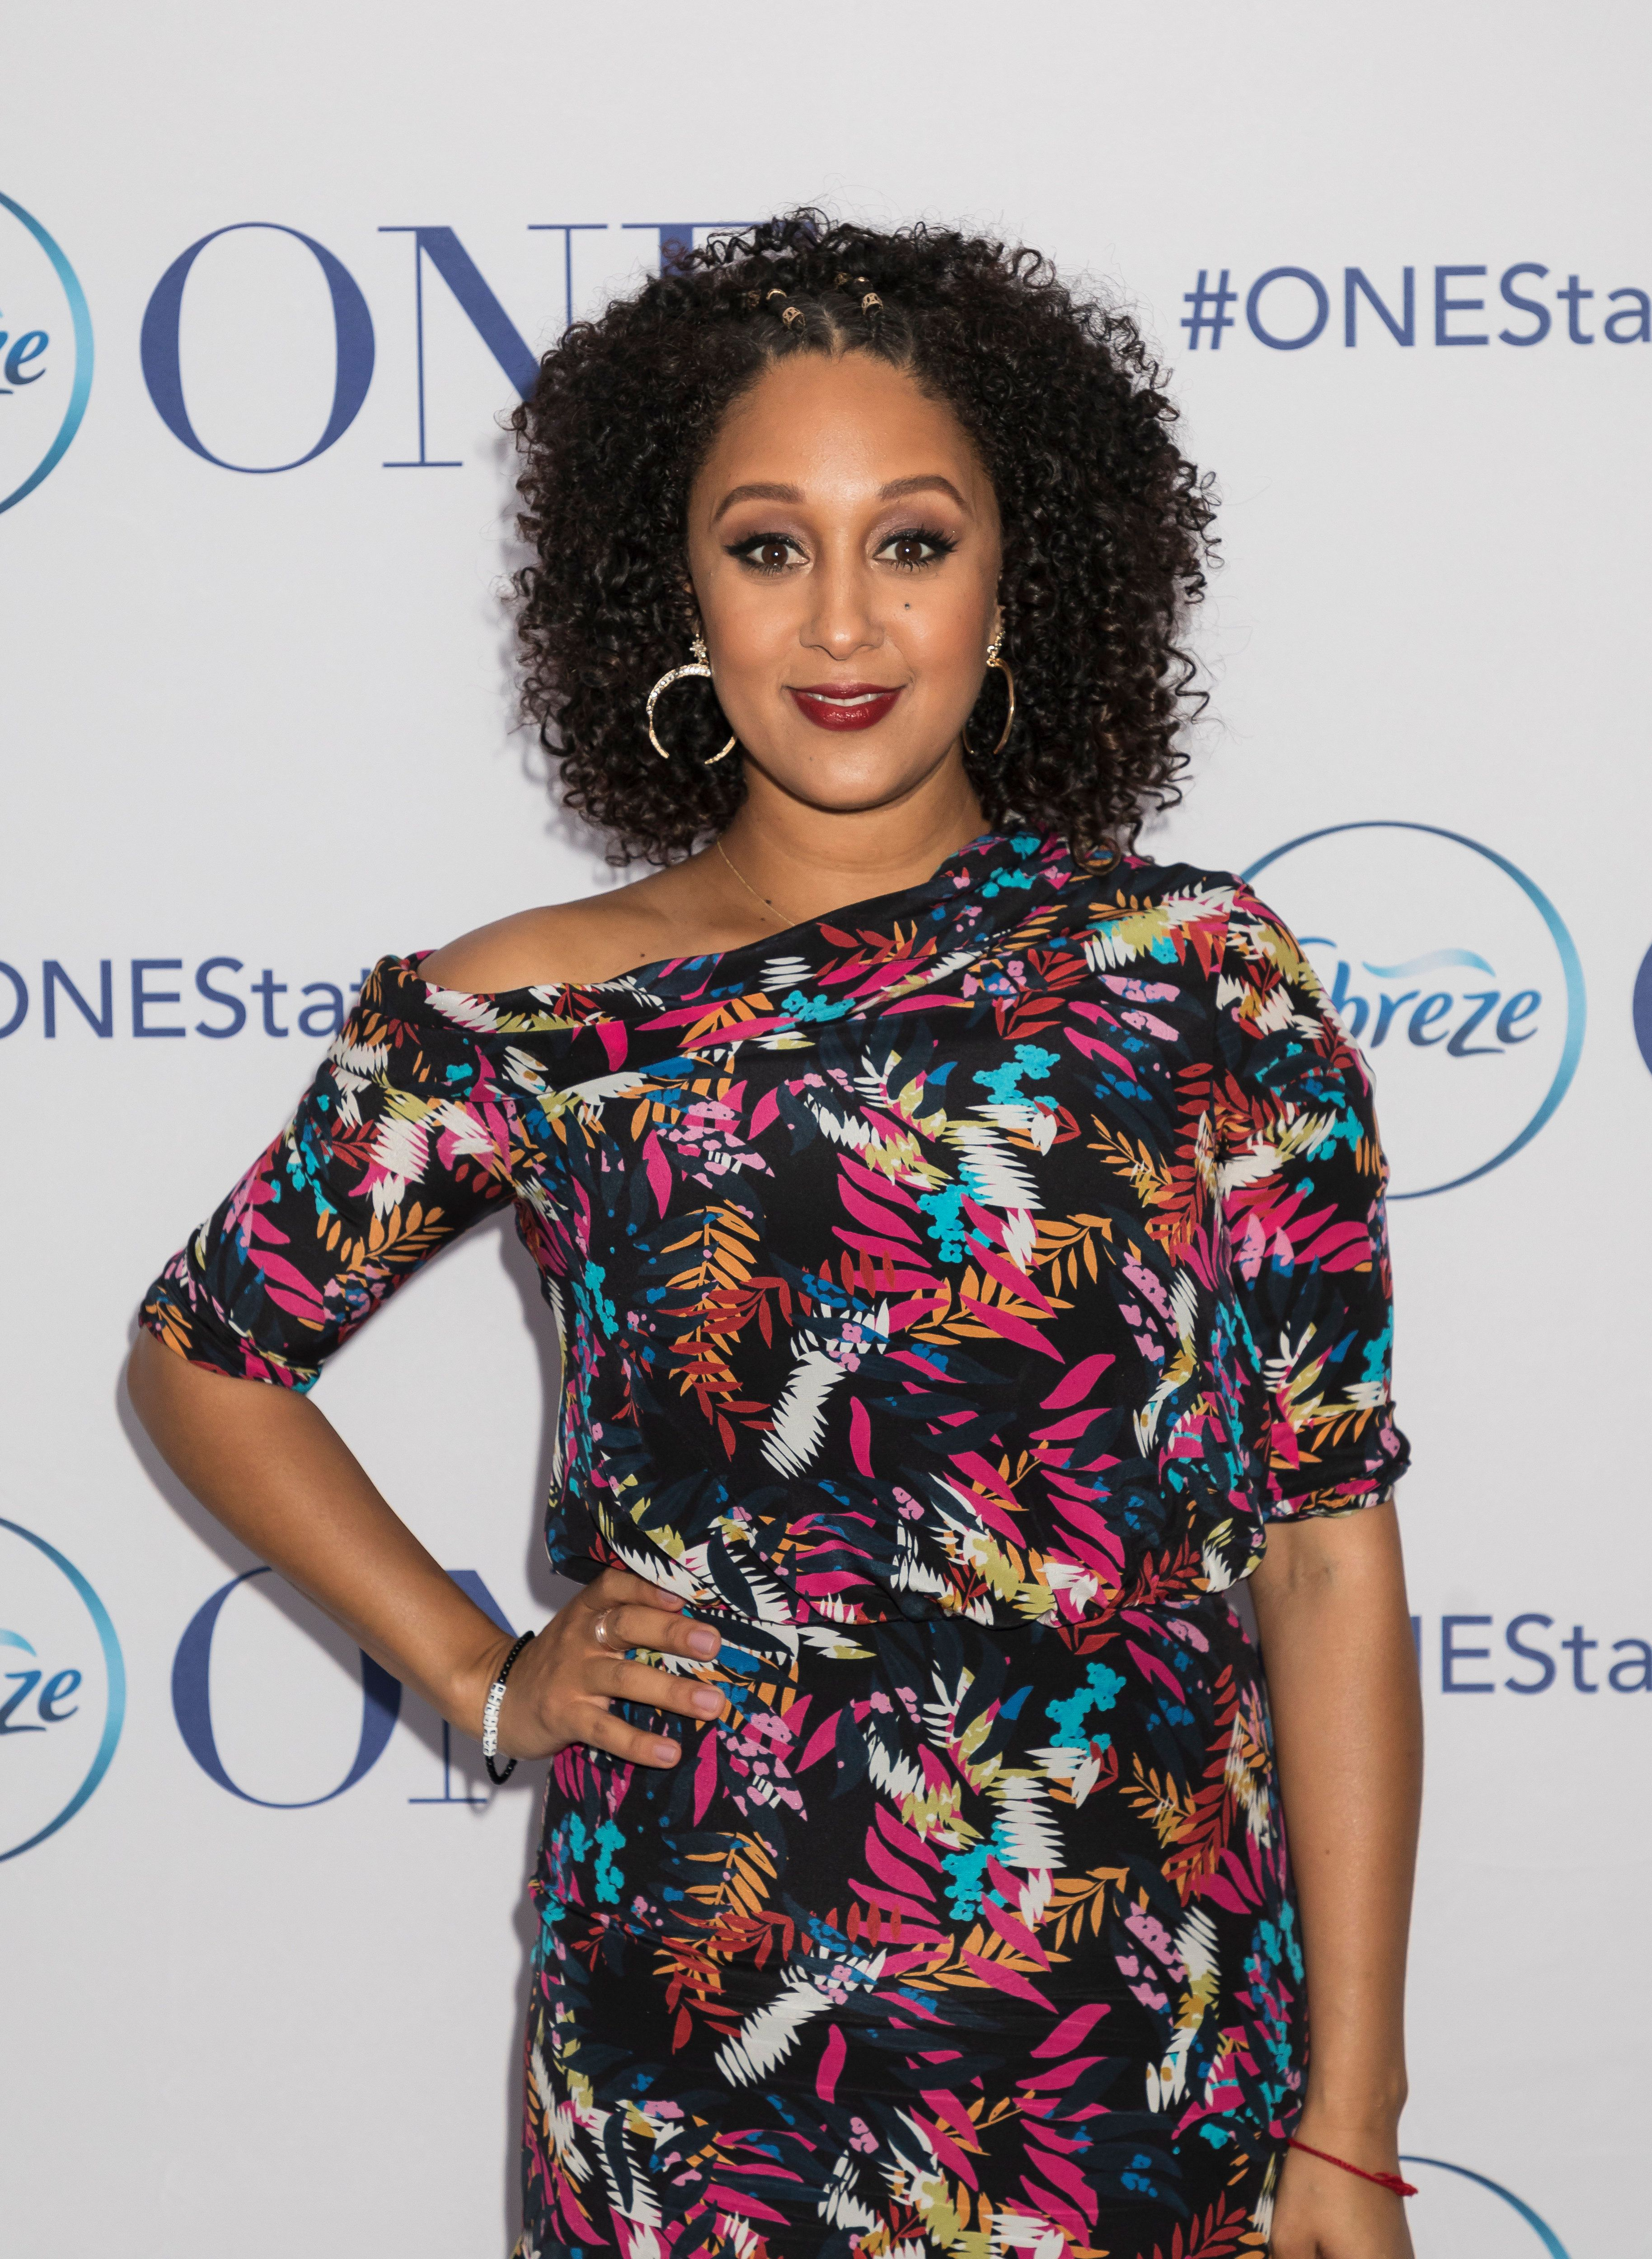 CLIQK SHOWROOM, NEW YORK, UNITED STATES - 2018/04/05: Febreze has partnered with celebrity actress and mom, Tamera Mowry-Housley, to film the ONE Happy Home video series at Cliqk Showroom, NYC. Tamera introduces Febreze ONE product. (Photo by Sam Aronov/Pacific Press/LightRocket via Getty Images)